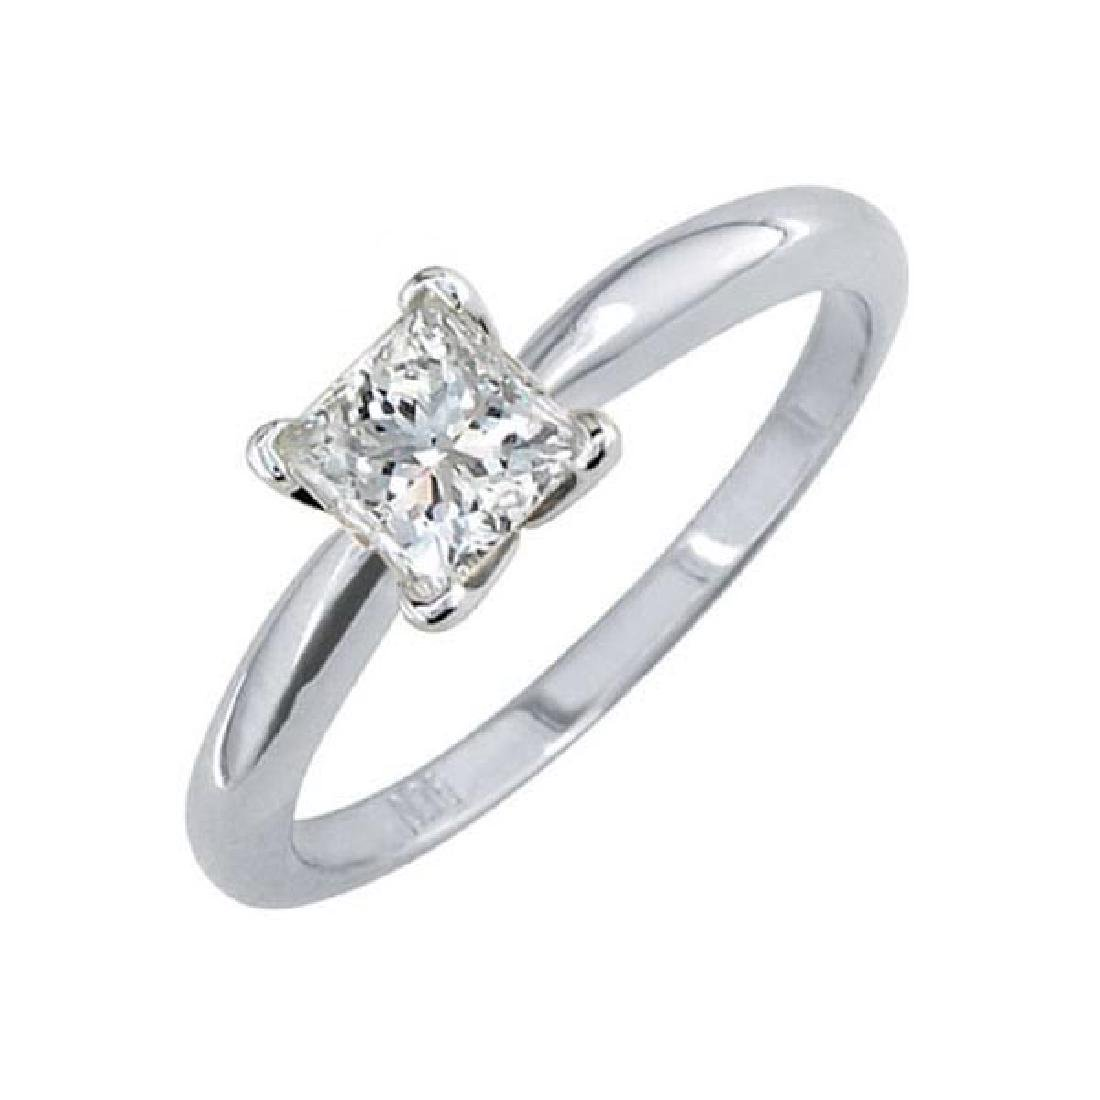 Certified 0.41 CTW Princess Diamond Solitaire 14k Ring